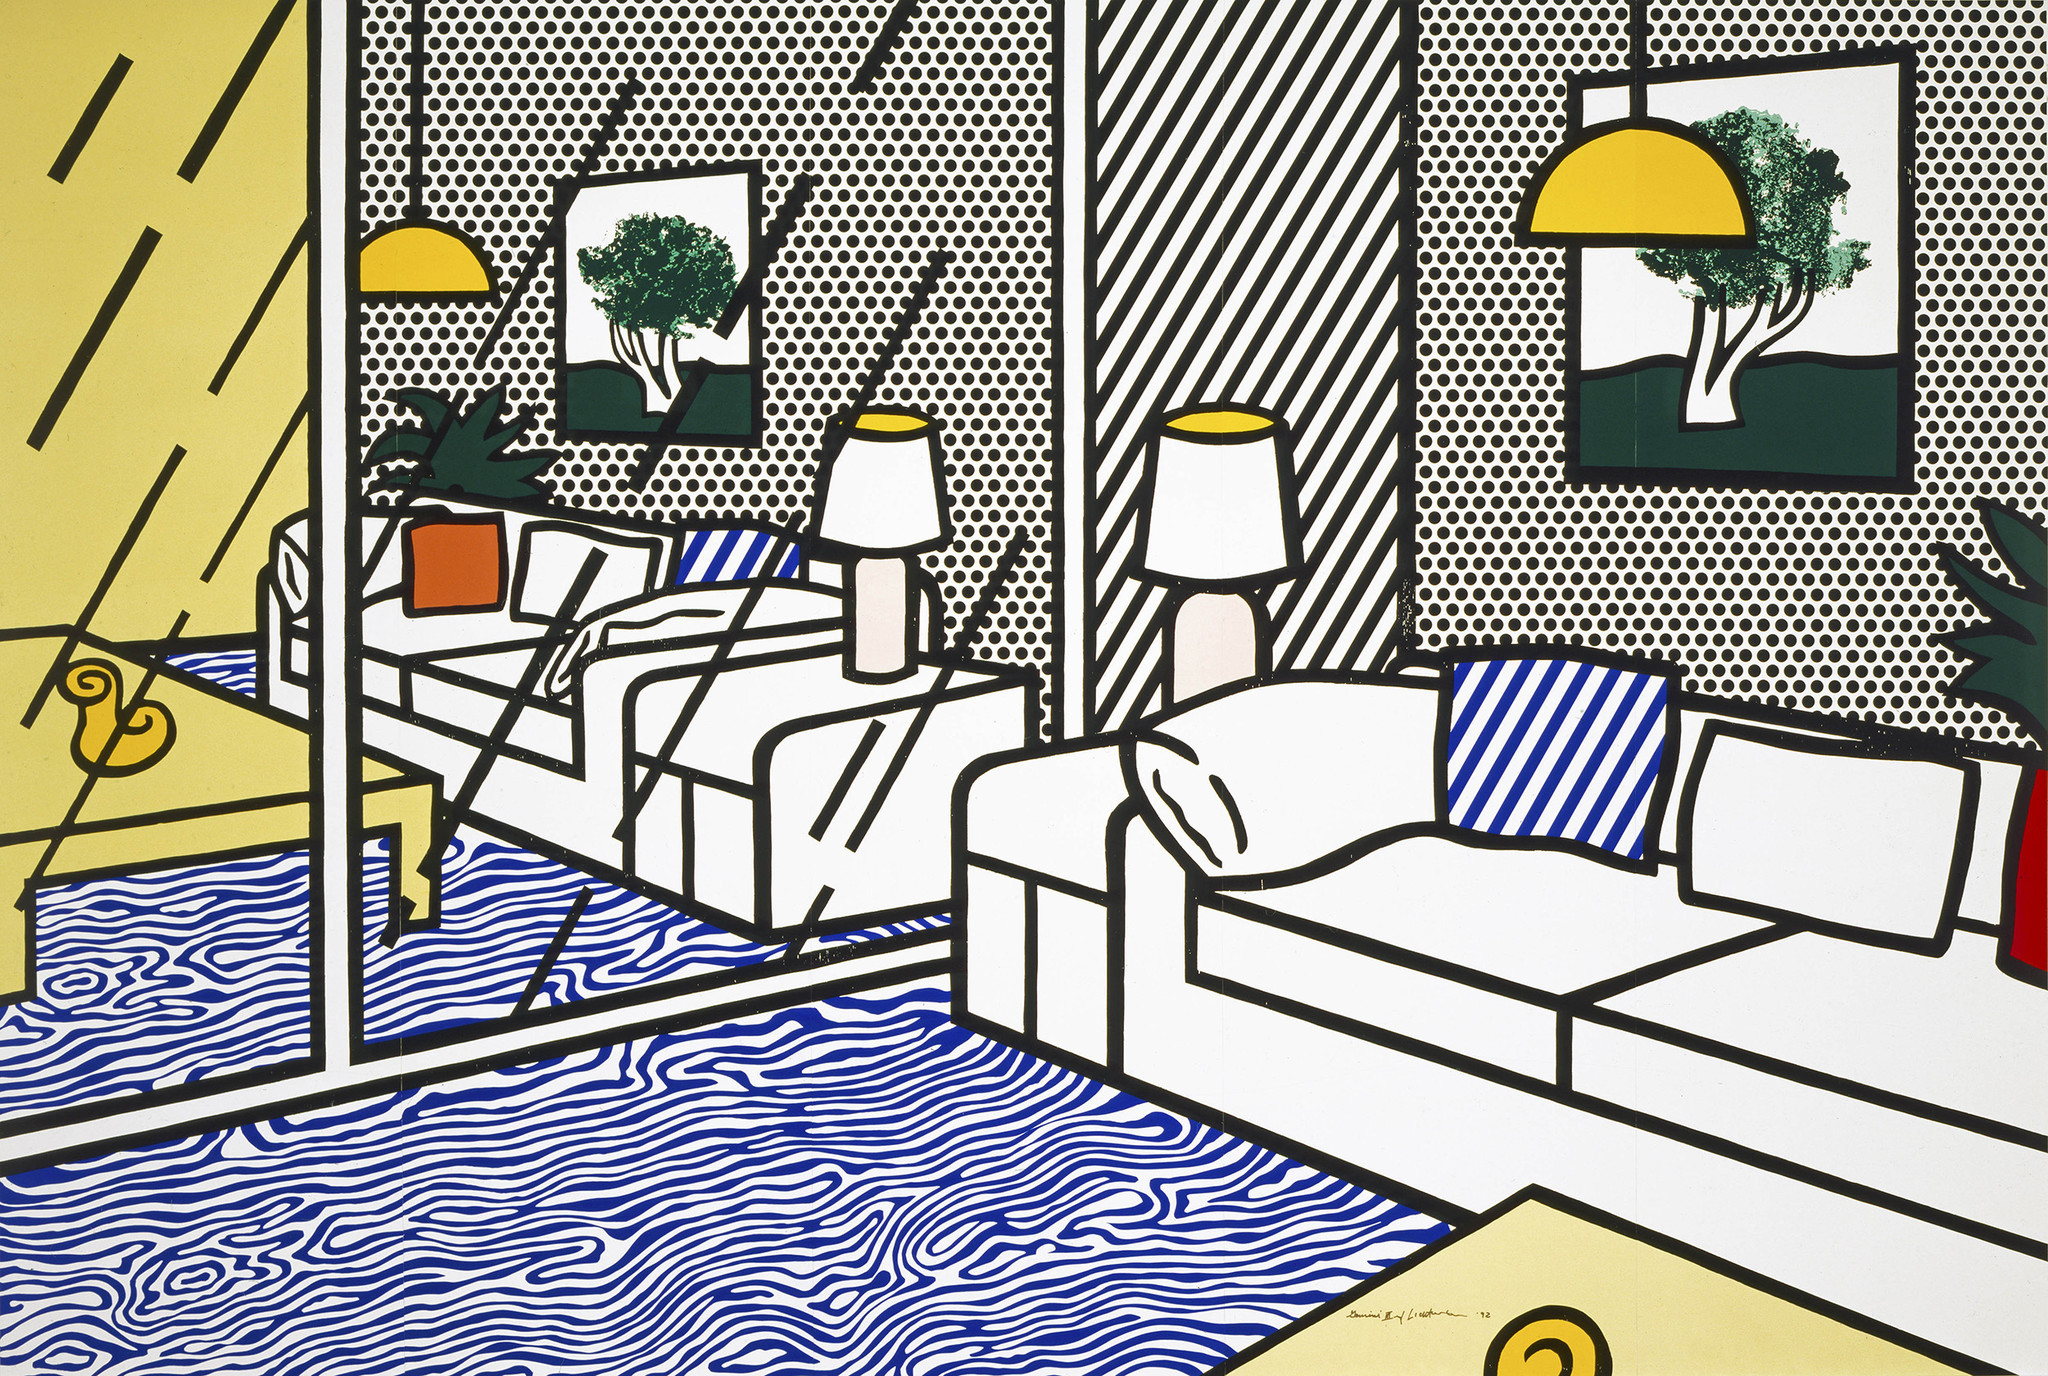 """Wallpaper With Blue Floor Interior,"" 1992, by Roy Lichtenstein, part of a retrospective devoted to the artist at the Skirball Cultural Center."